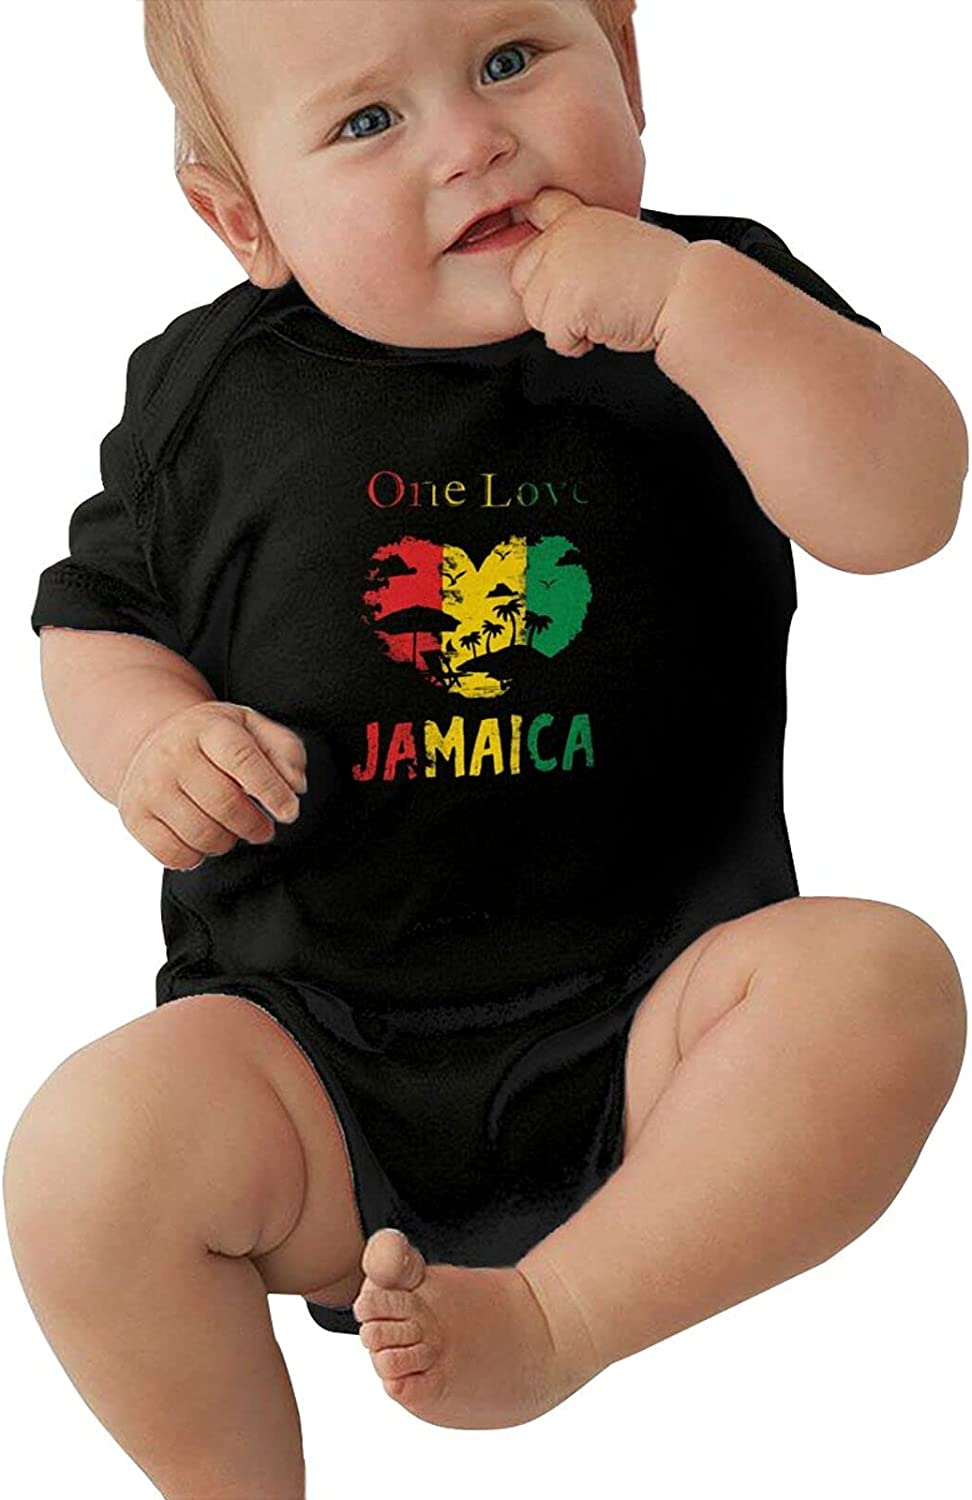 Jamaica One Love Max 69% OFF Babys Jersey Bodysuit Cool Romper Super beauty product restock quality top Sleeve Short